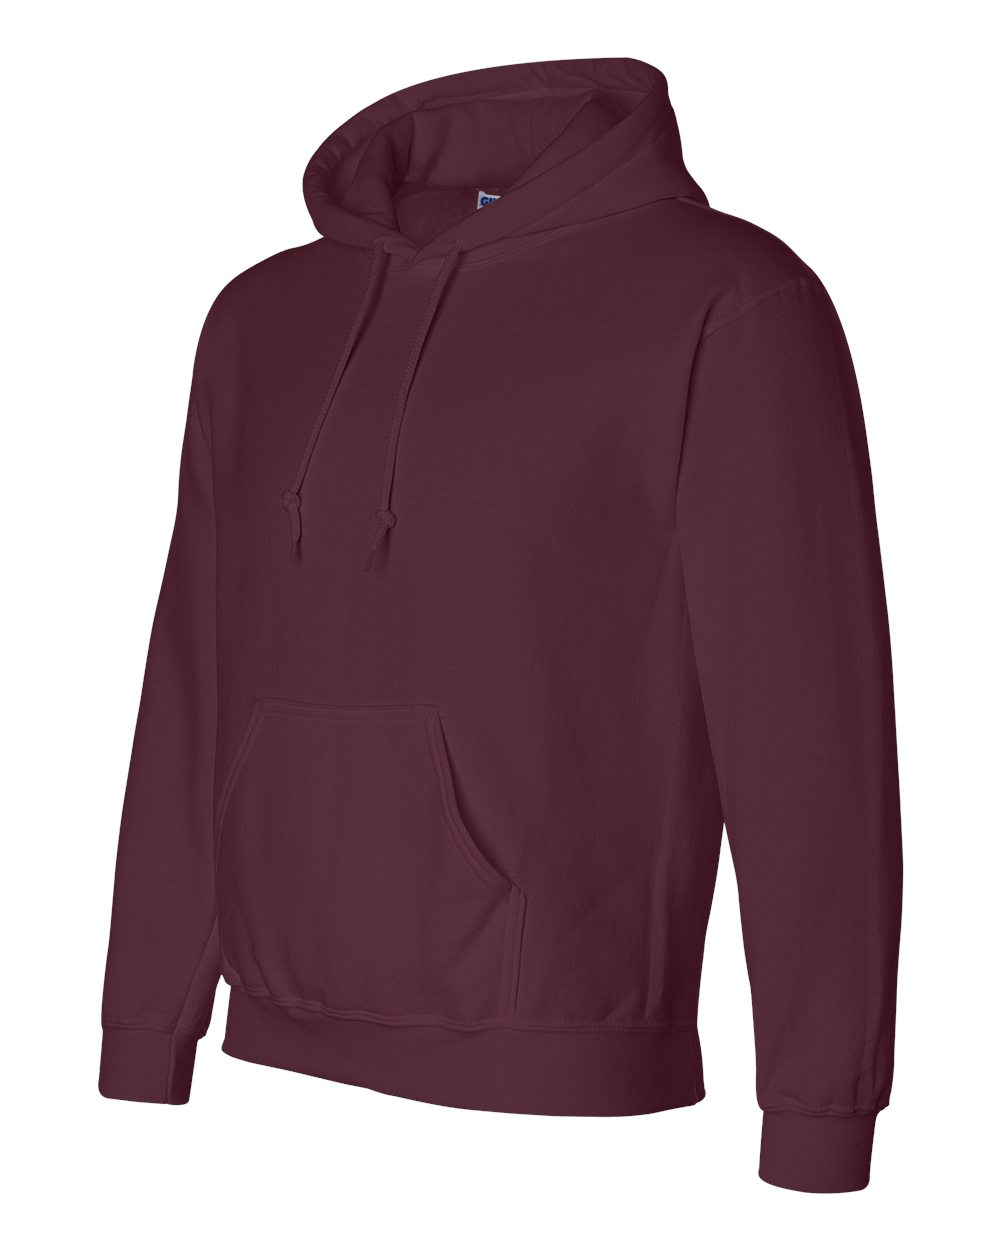 Gildan Ultra Blend Hooded sweater GIL12500 Maroon